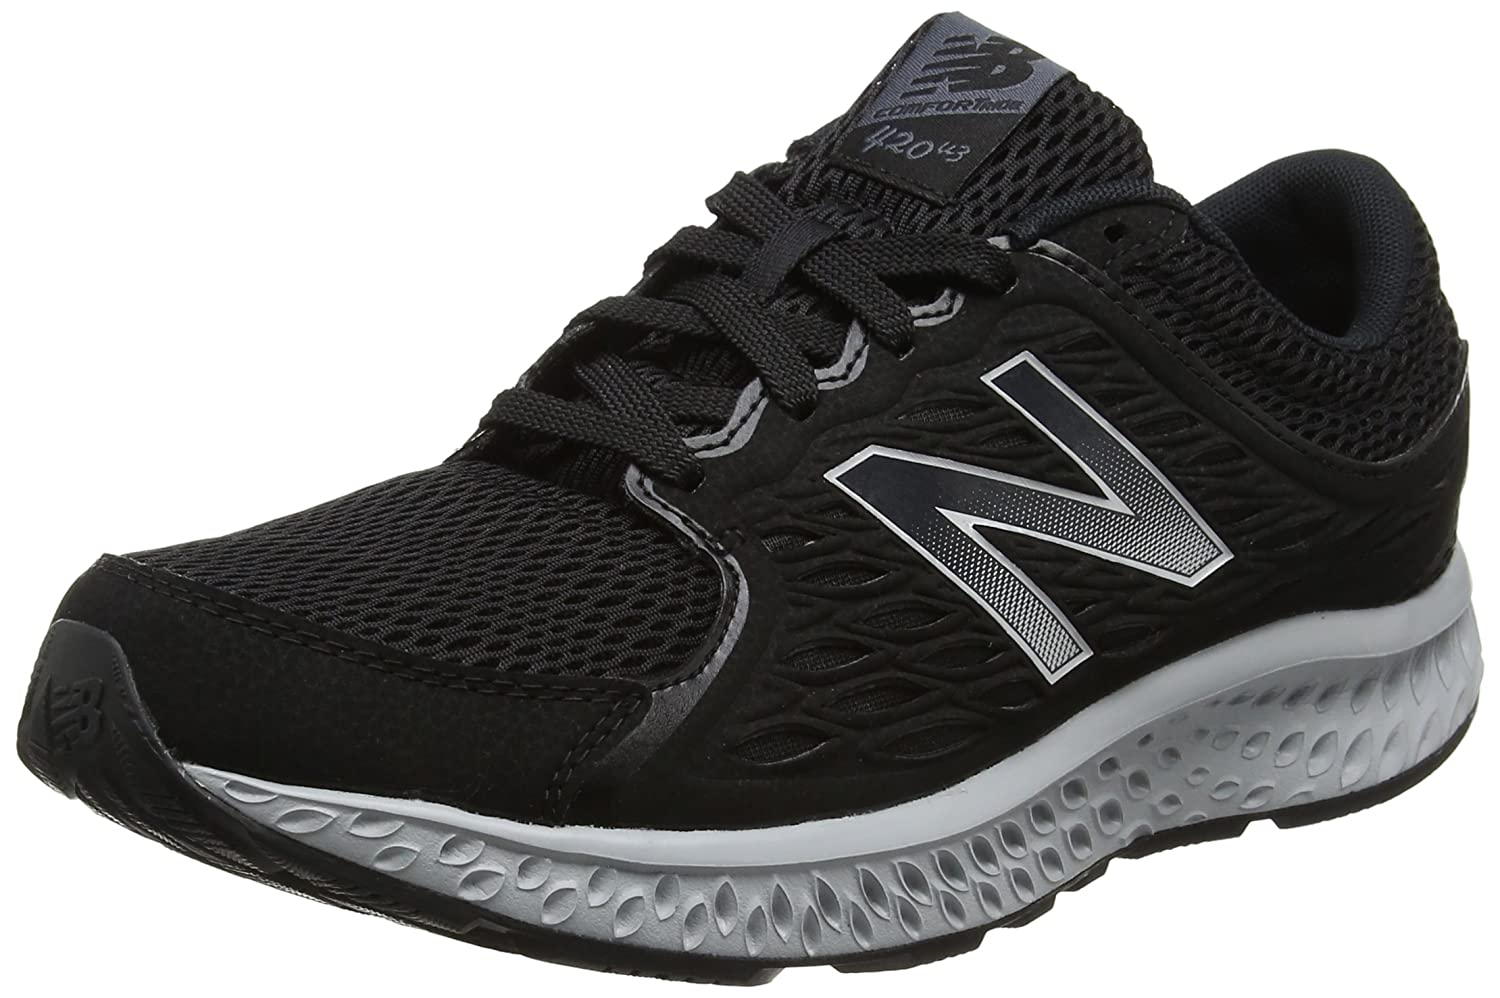 new balance m420v3 running shoes mens